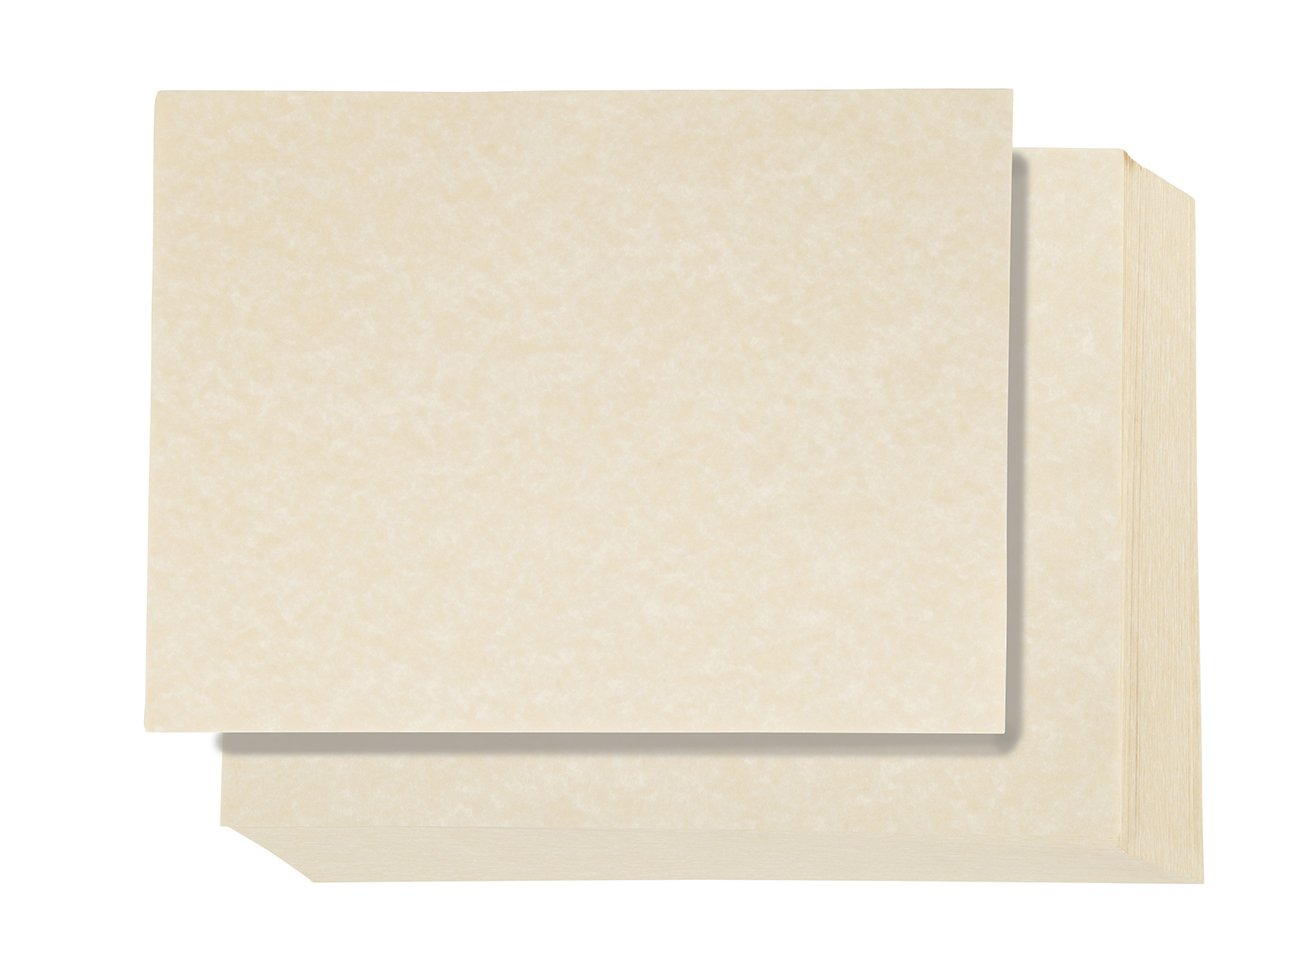 Pack of 96 Aged Parchment Paper - Parchment Paper with Parchtone Paper - Vintage Scrapbook Paper, Sand, 8.5 x 11 Inches by Best Paper Greetings